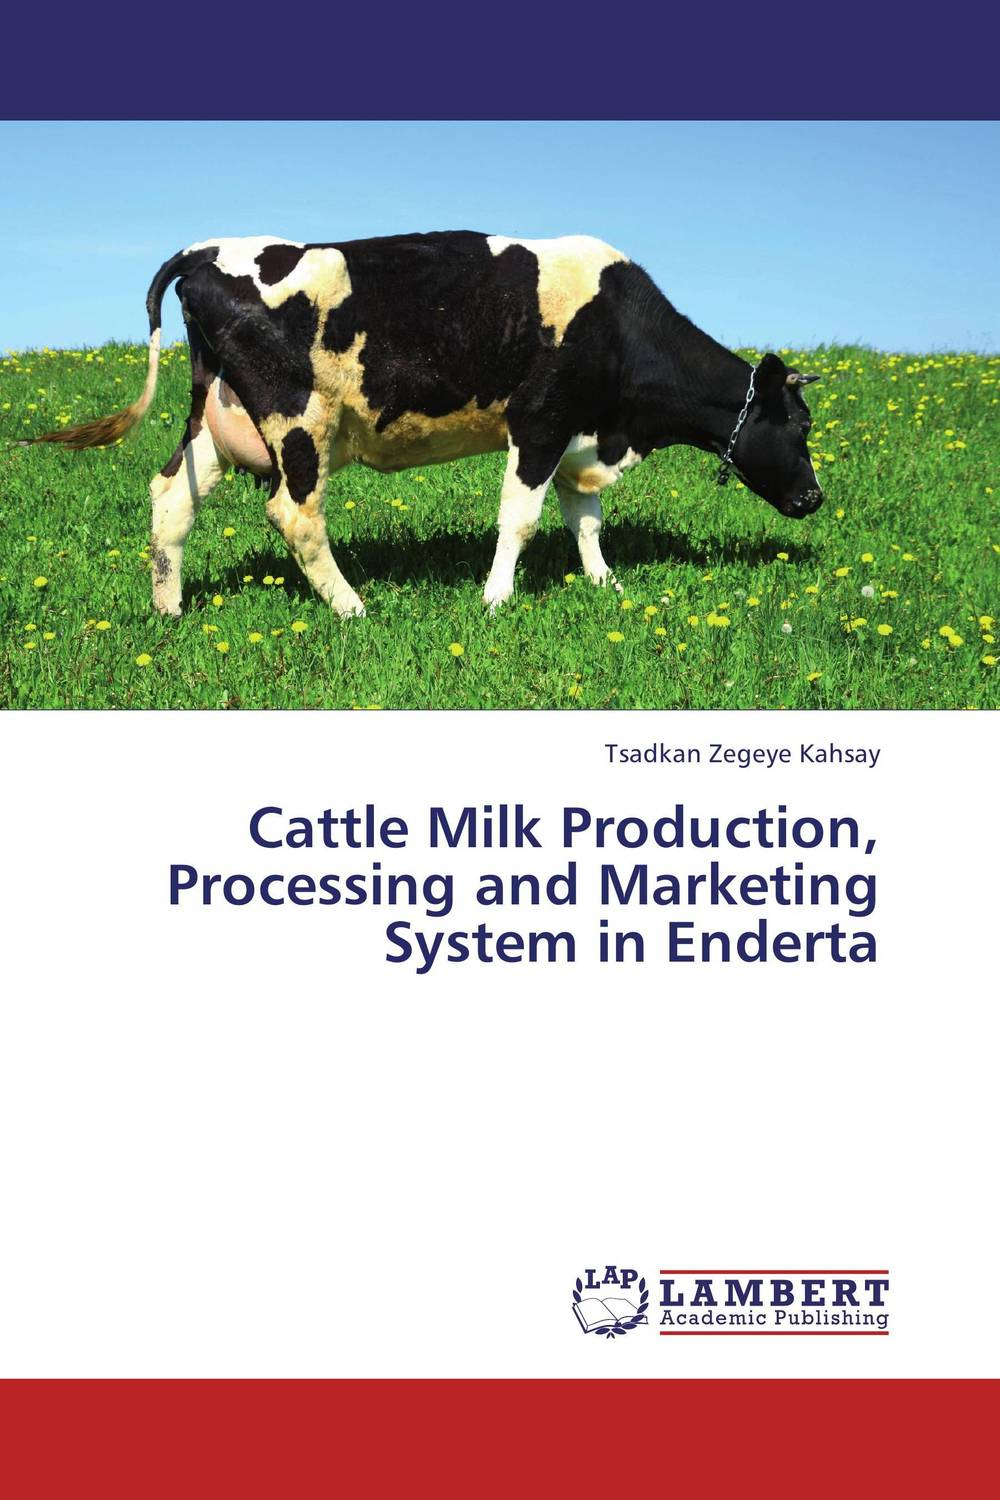 Cattle Milk Production, Processing and Marketing System in Enderta improved milk processing techniques